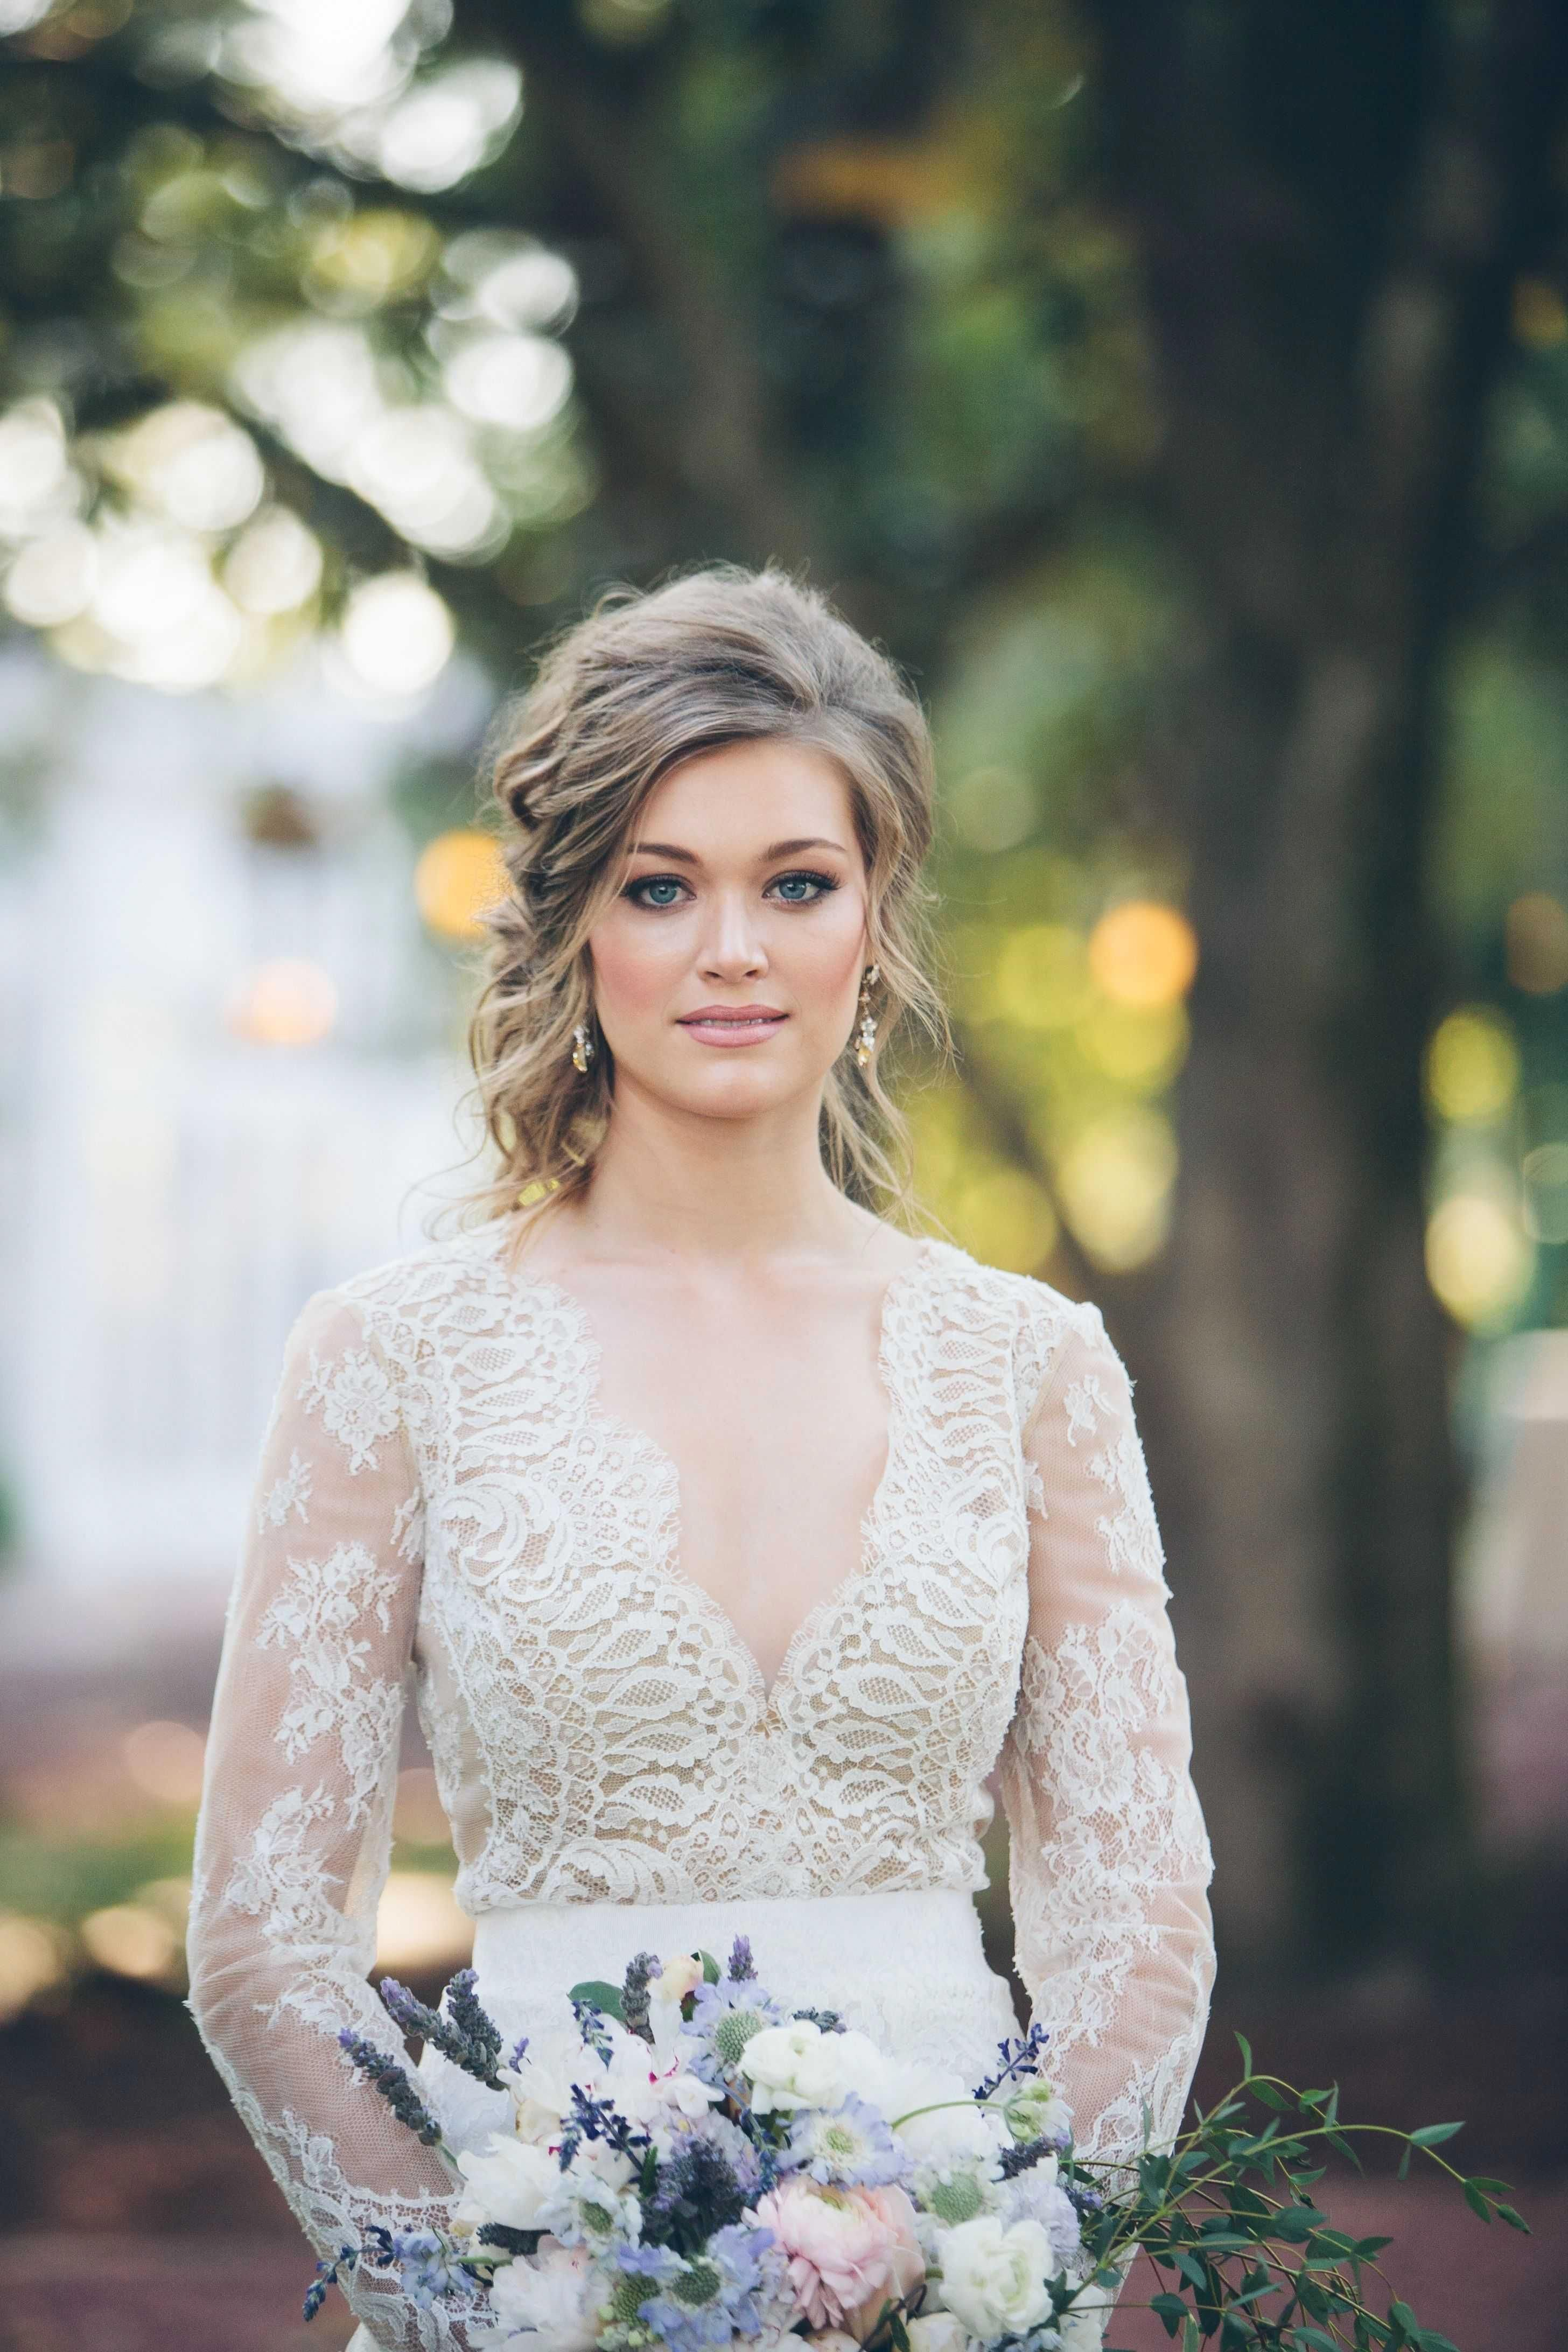 Wedding Hairstyles For Backless Dresses Awesome Wedding Hairstyles For Backless Dresses I Vintage Wedding Hair Wedding Dress Long Sleeve Retro Wedding Hair